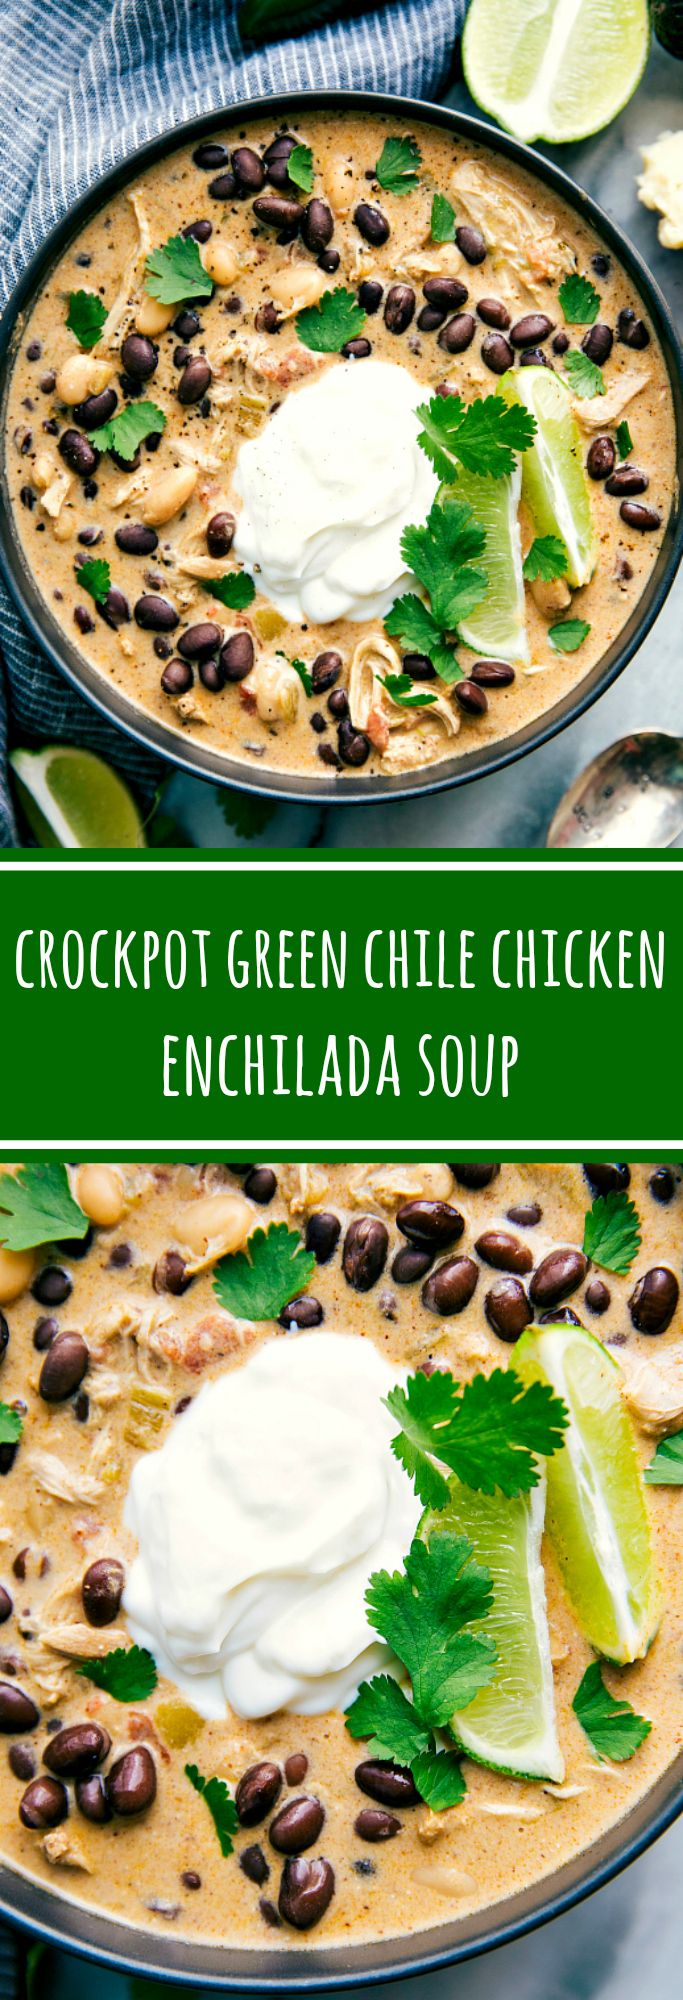 Crockpot Green Chile Chicken Enchilada Soup -- your favorite green chile chicken enchiladas in a creamy, delicious, and easy soup form